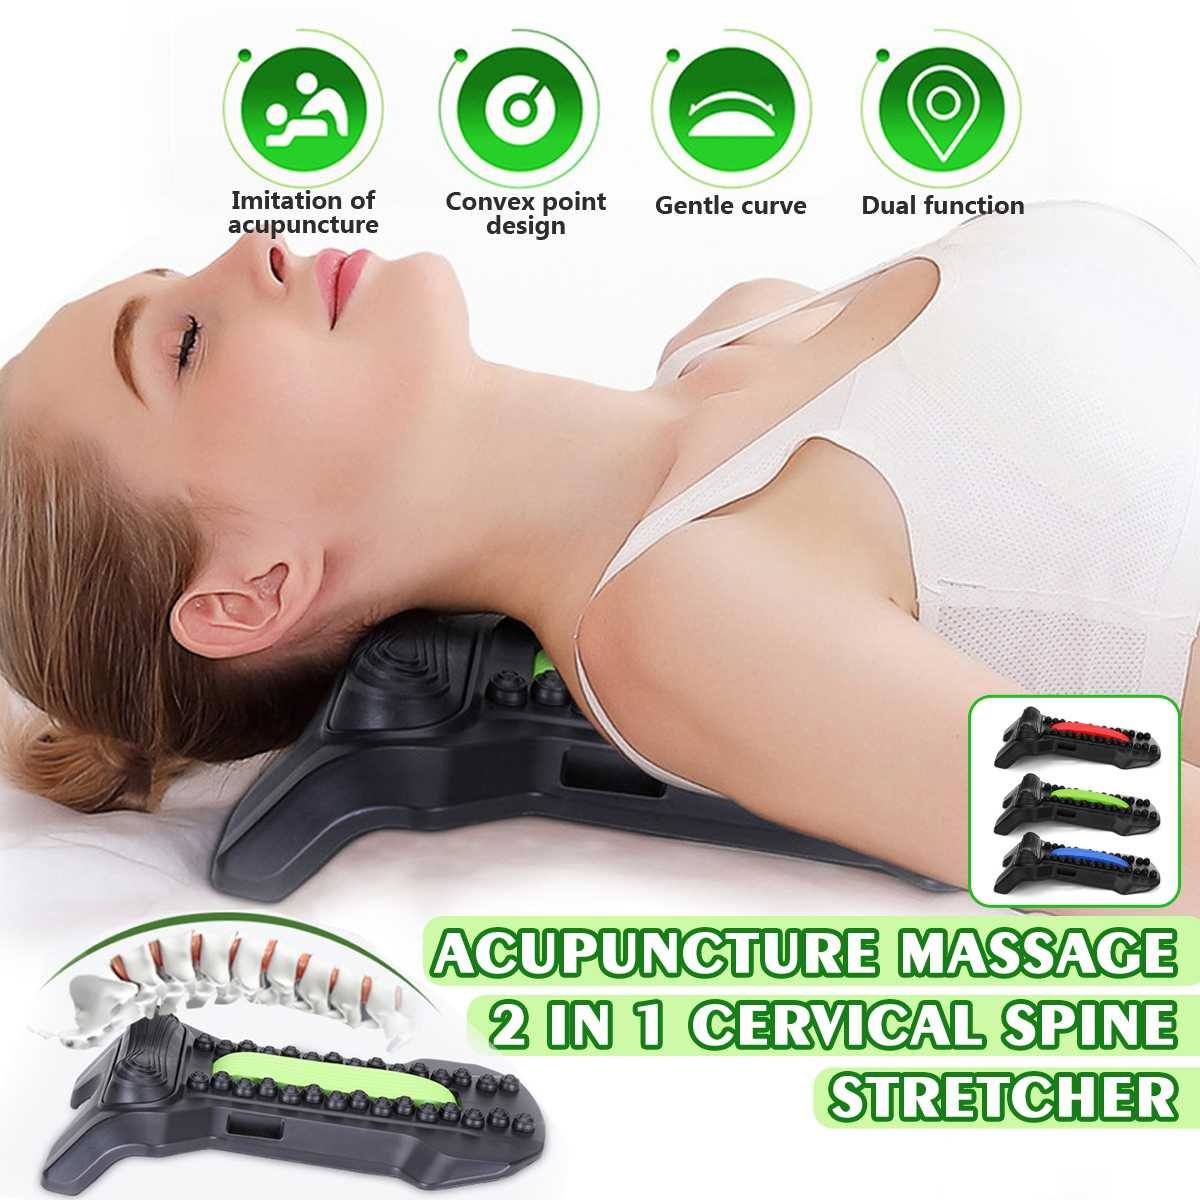 2in1 Cervical Spine Stretcher Correct Cervical Vertebra Lumbar Traction Straight Spine Relax Acupuncture Massage Board Fitness